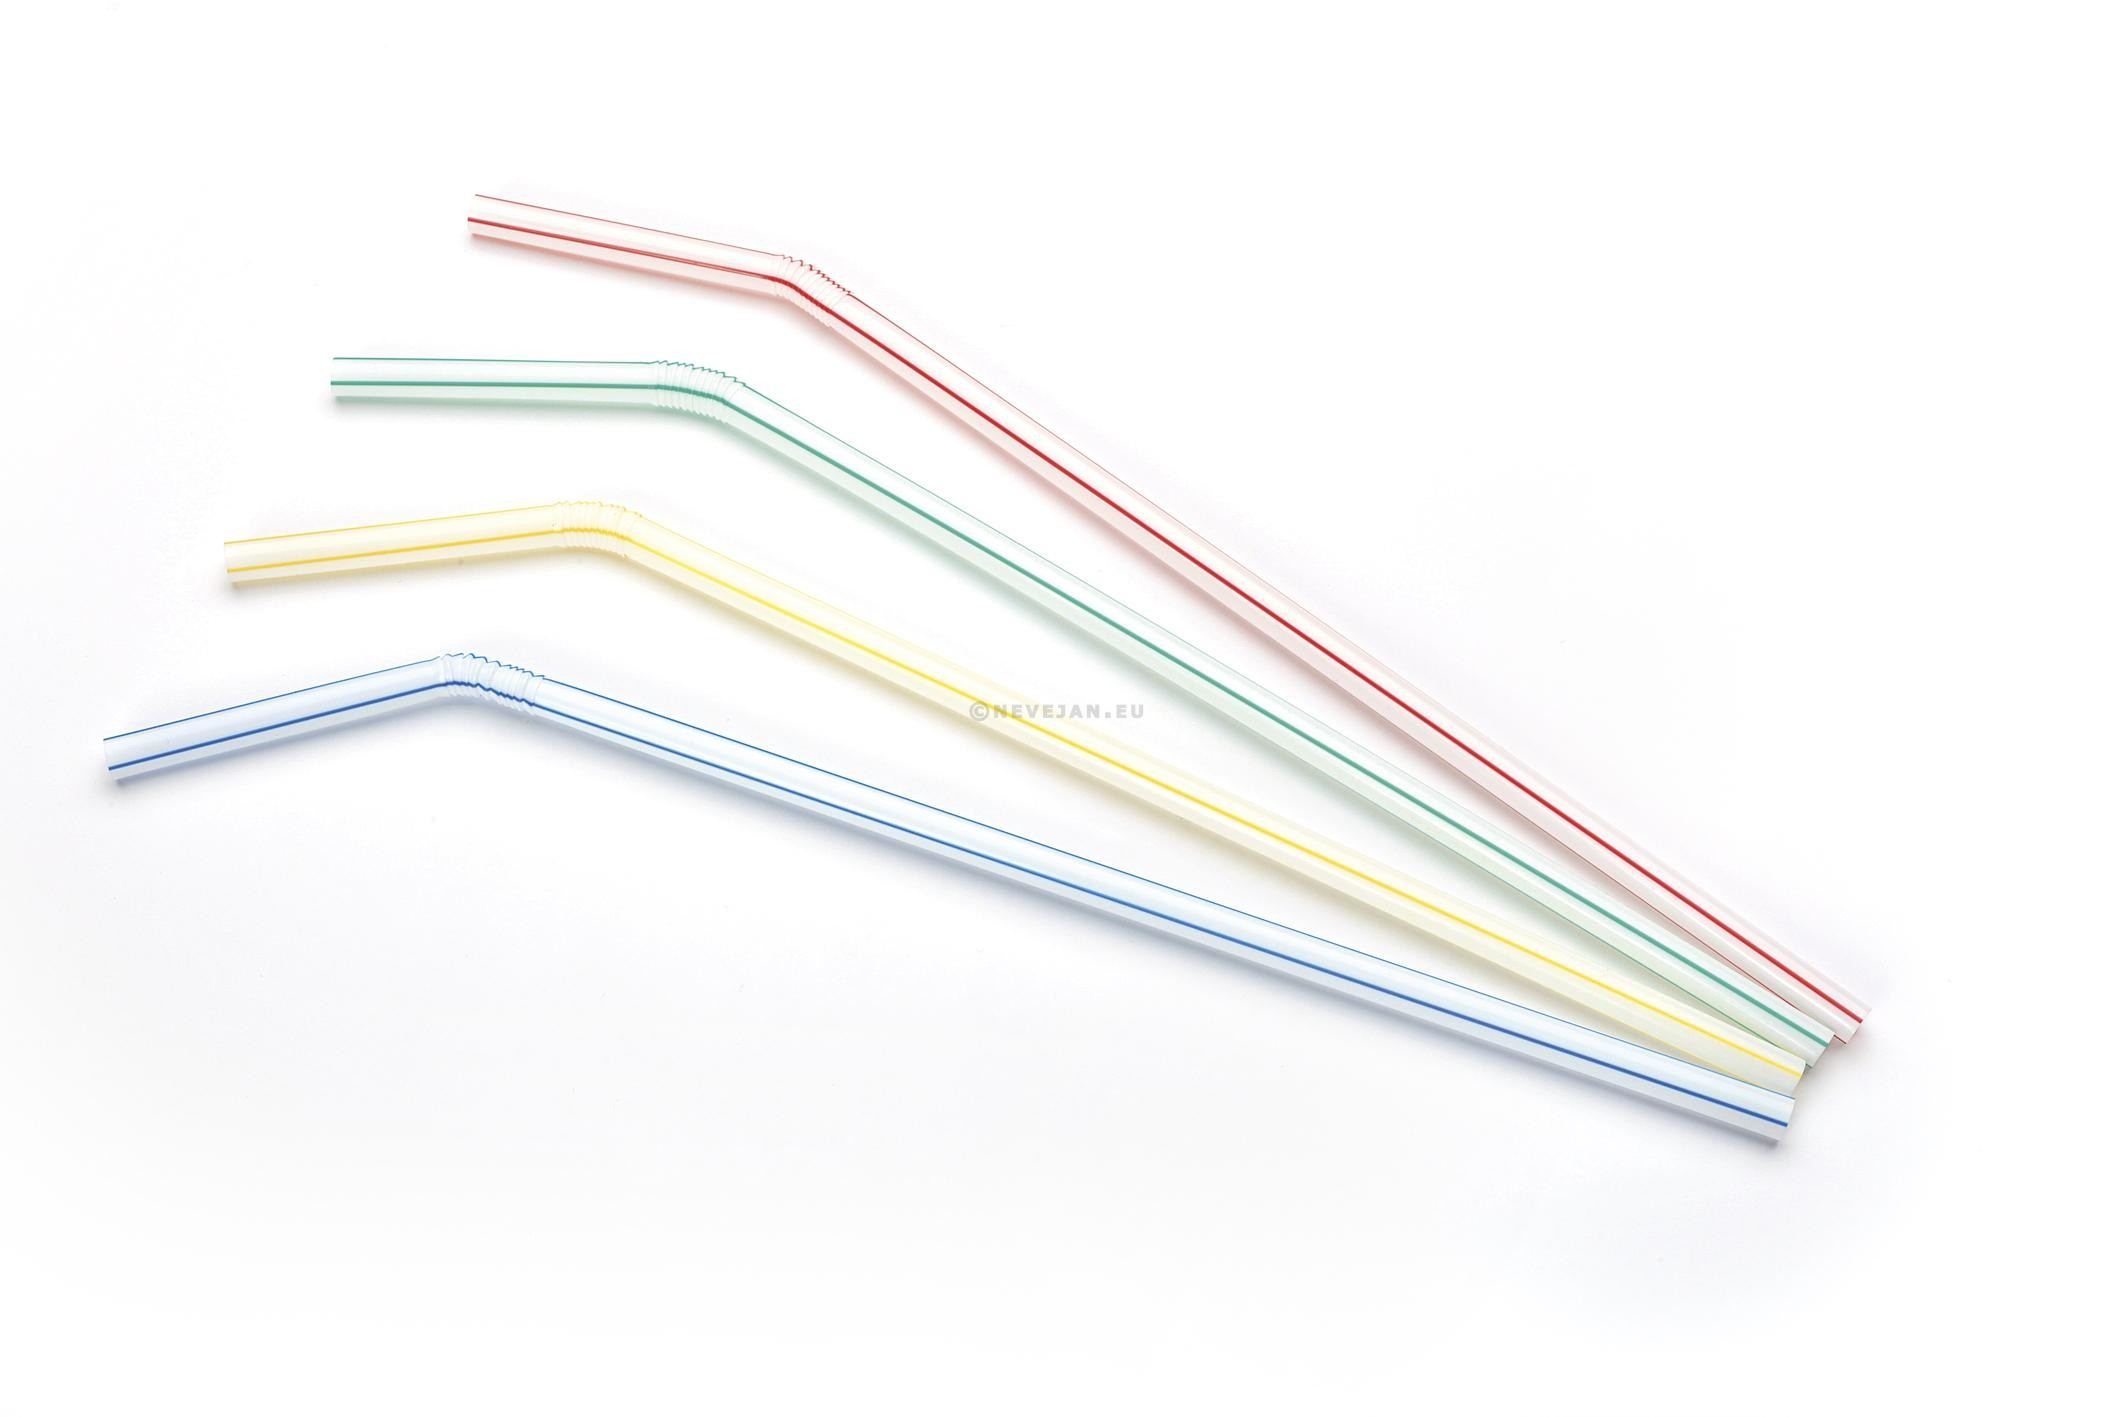 Striped Drinking straws flexible 5mm 24cm 250pcs